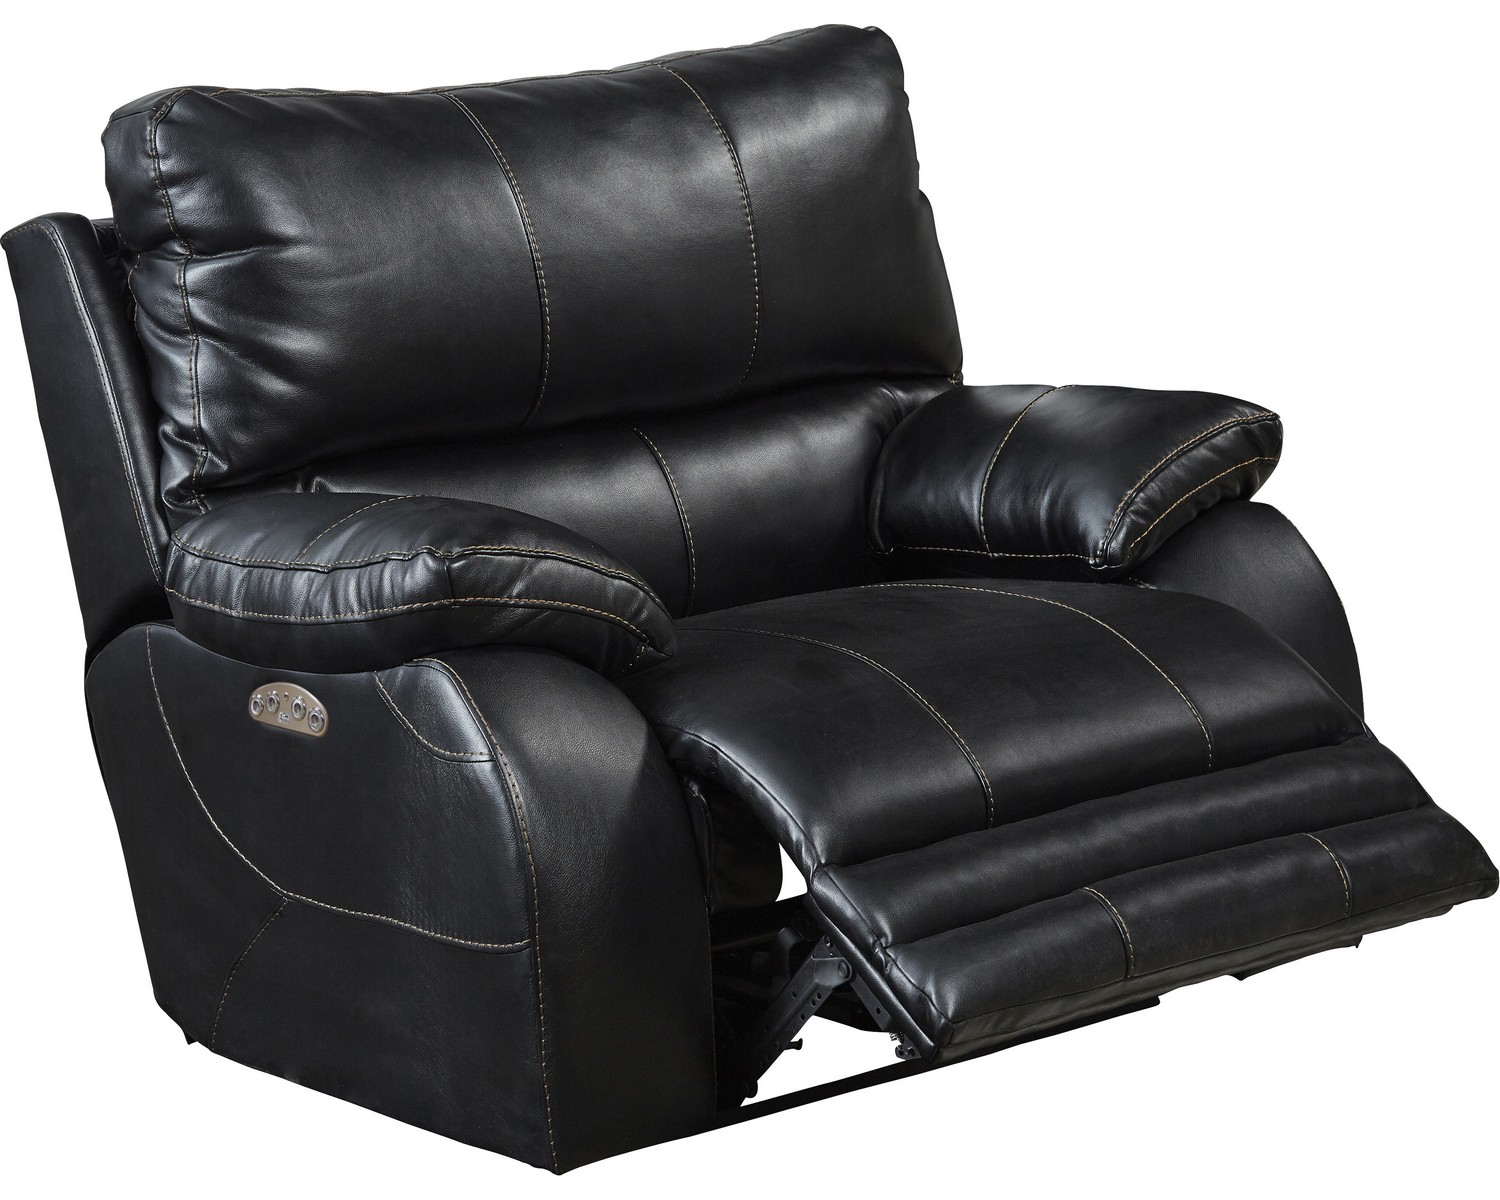 CatNapper Sheridan Power Headrest Power Lay Flat Recliner - Black